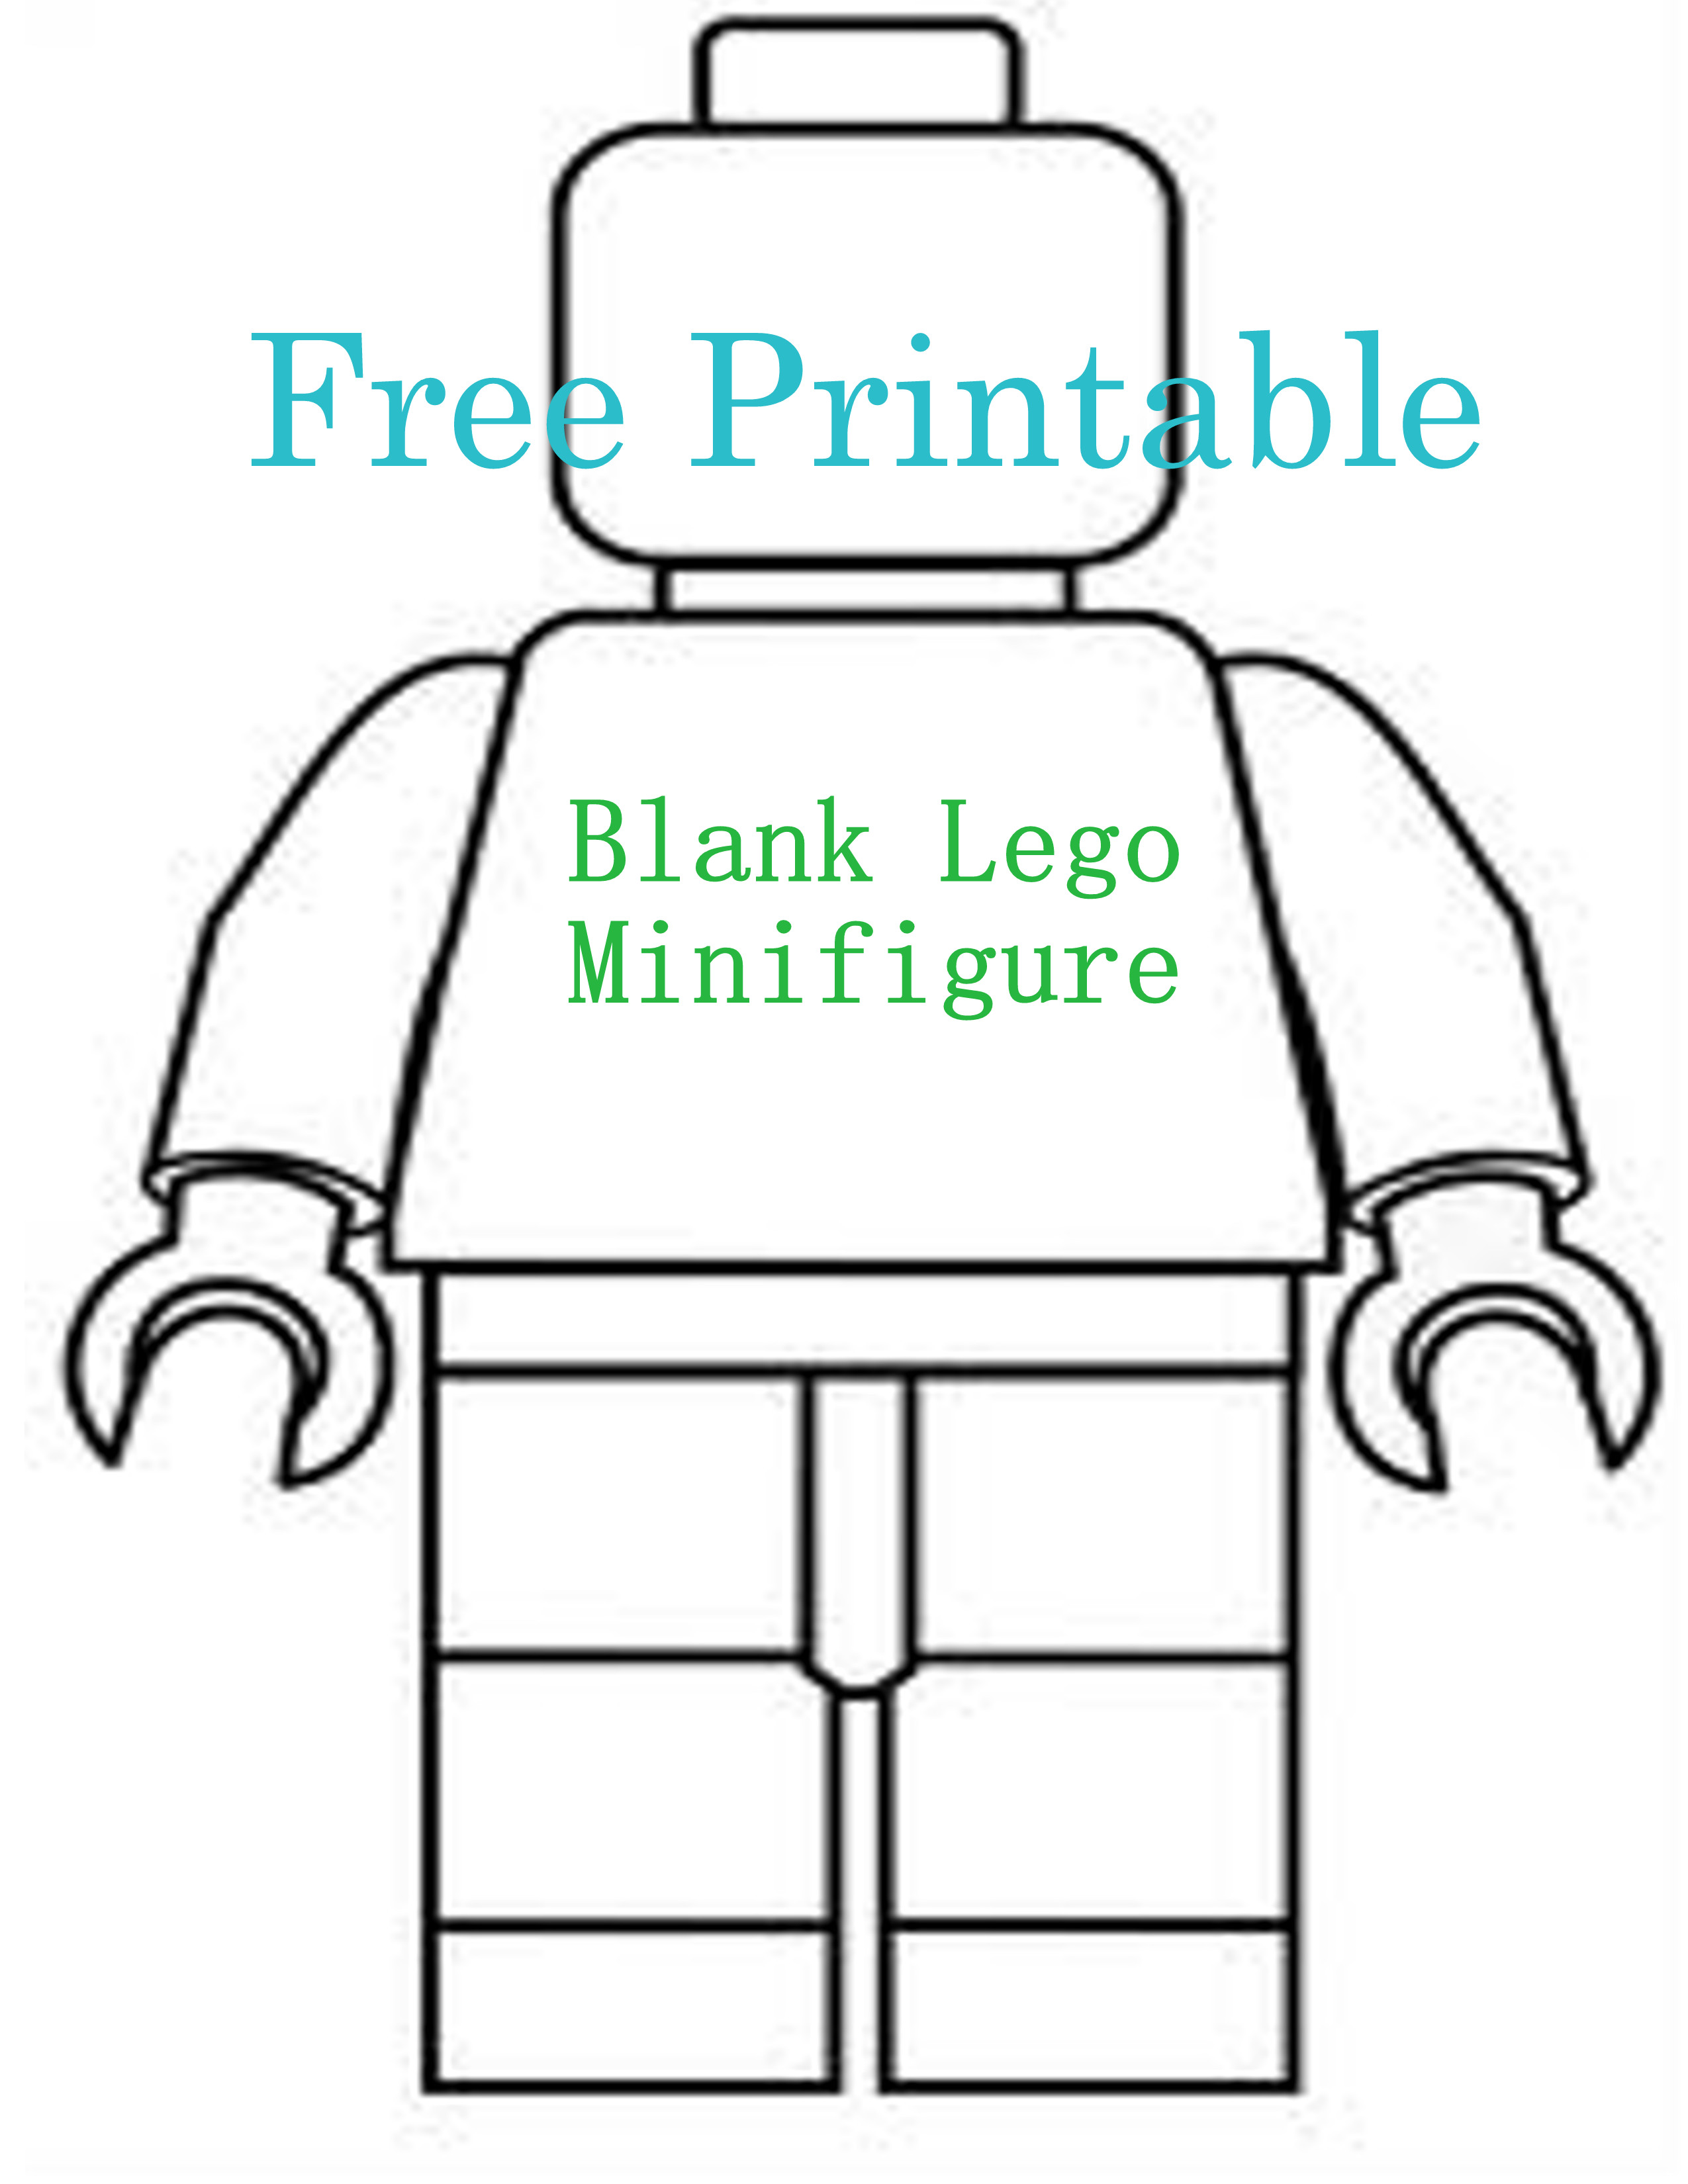 picture about Lego Minifigure Printable titled Free of charge Printable ~ Blank Lego Minifigure Lovable BenannaSam